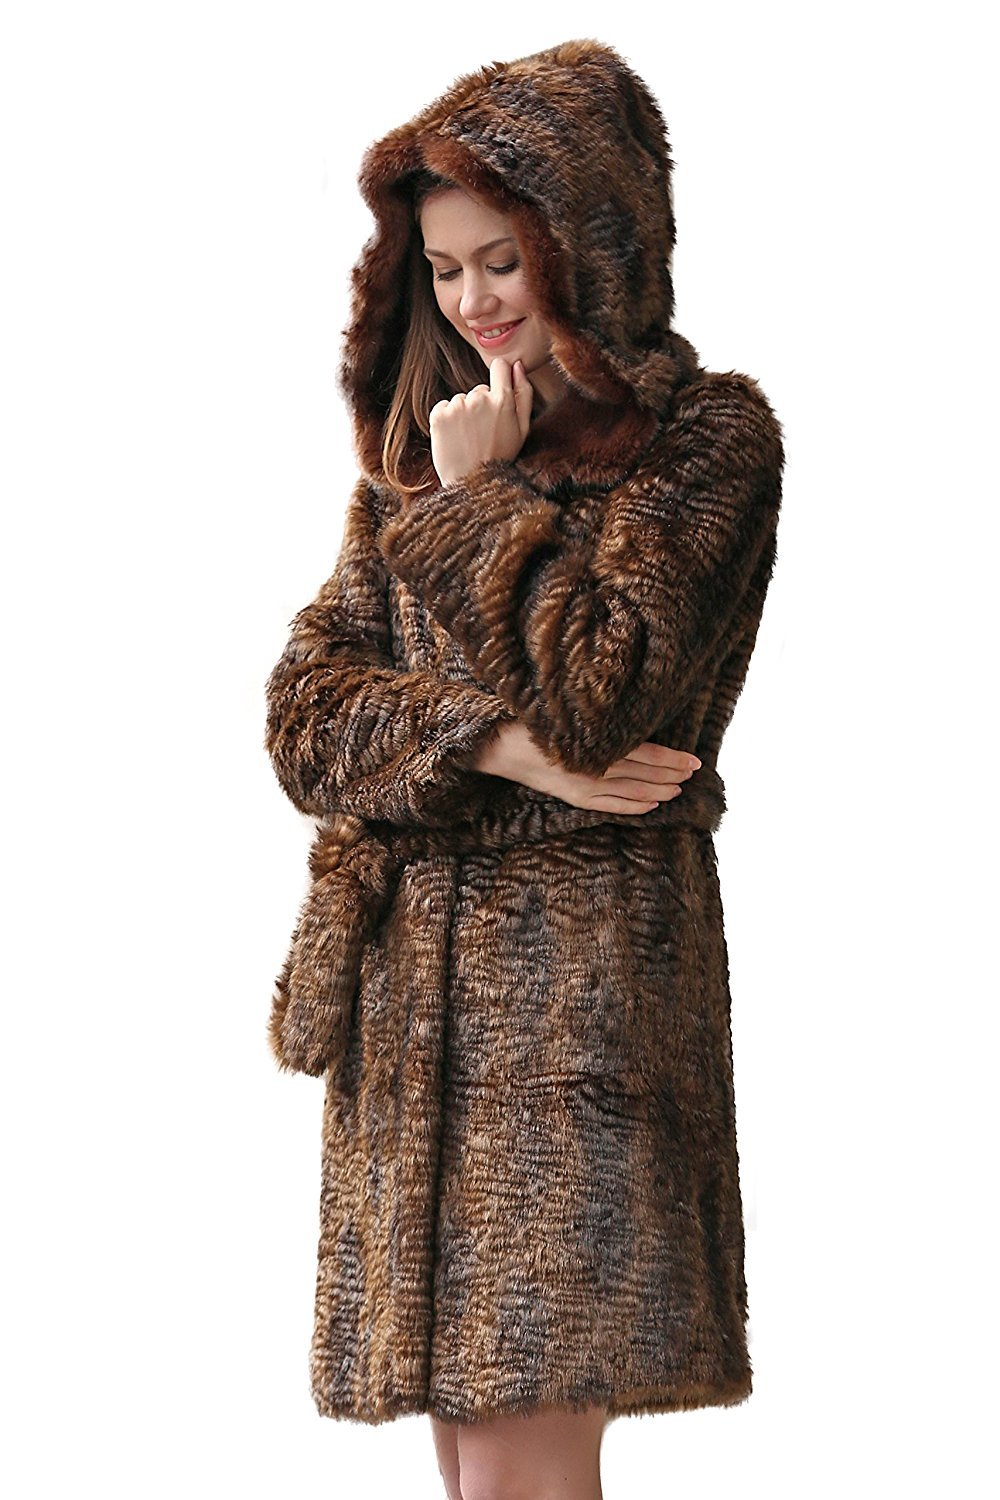 Adelaqueen Women's Winter New Style Brown Persian Lamb Faux fur Coat Faux Sable Hooded Size M